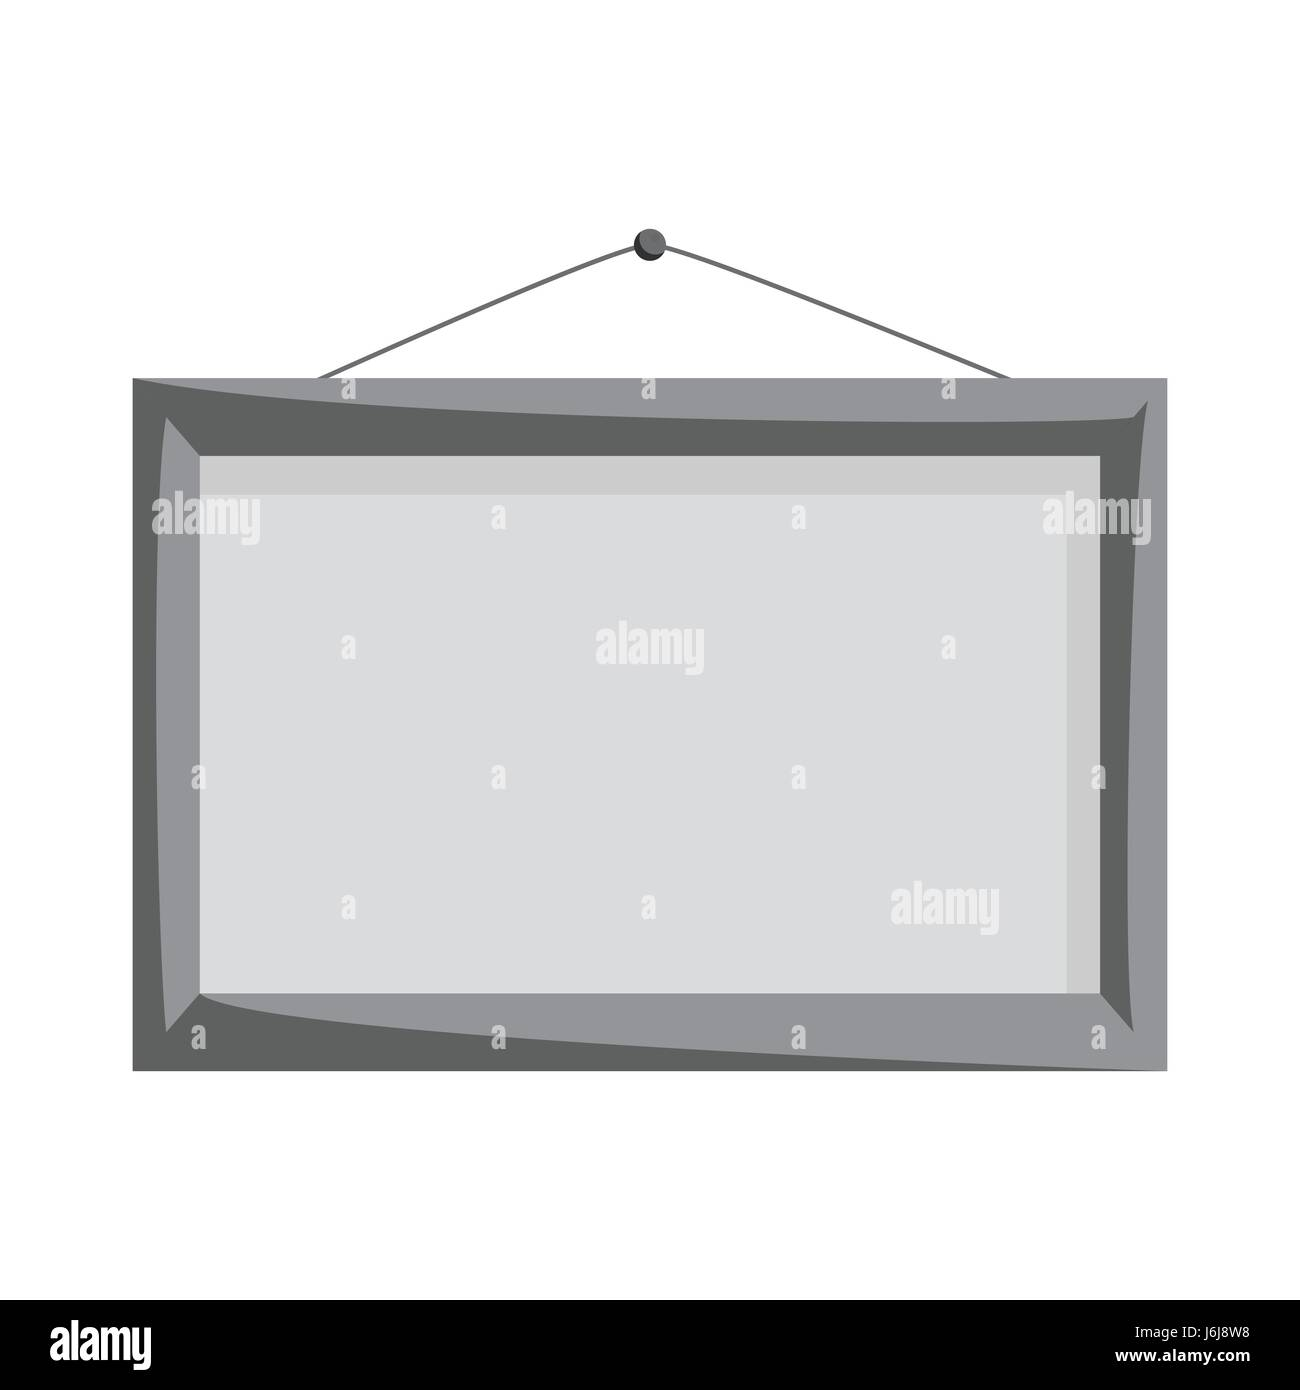 Wooden frame on the wall icon, monochrome style - Stock Image